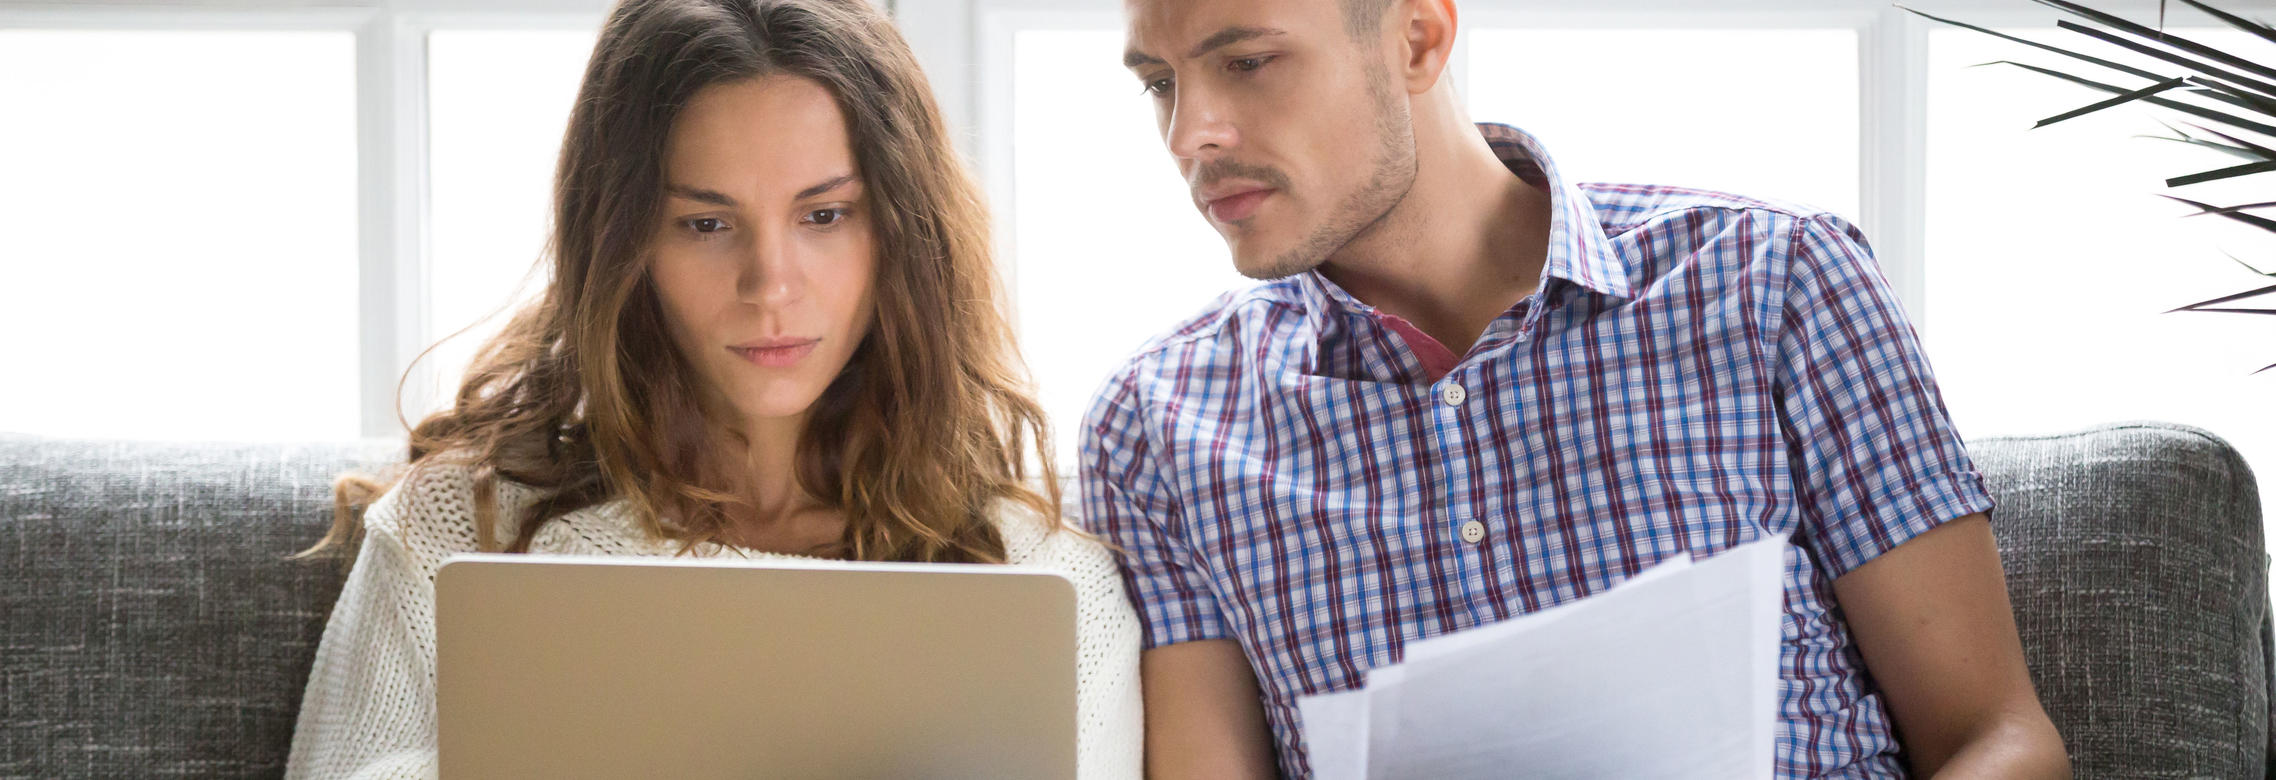 Focused worried couple paying bills online on laptop with documents